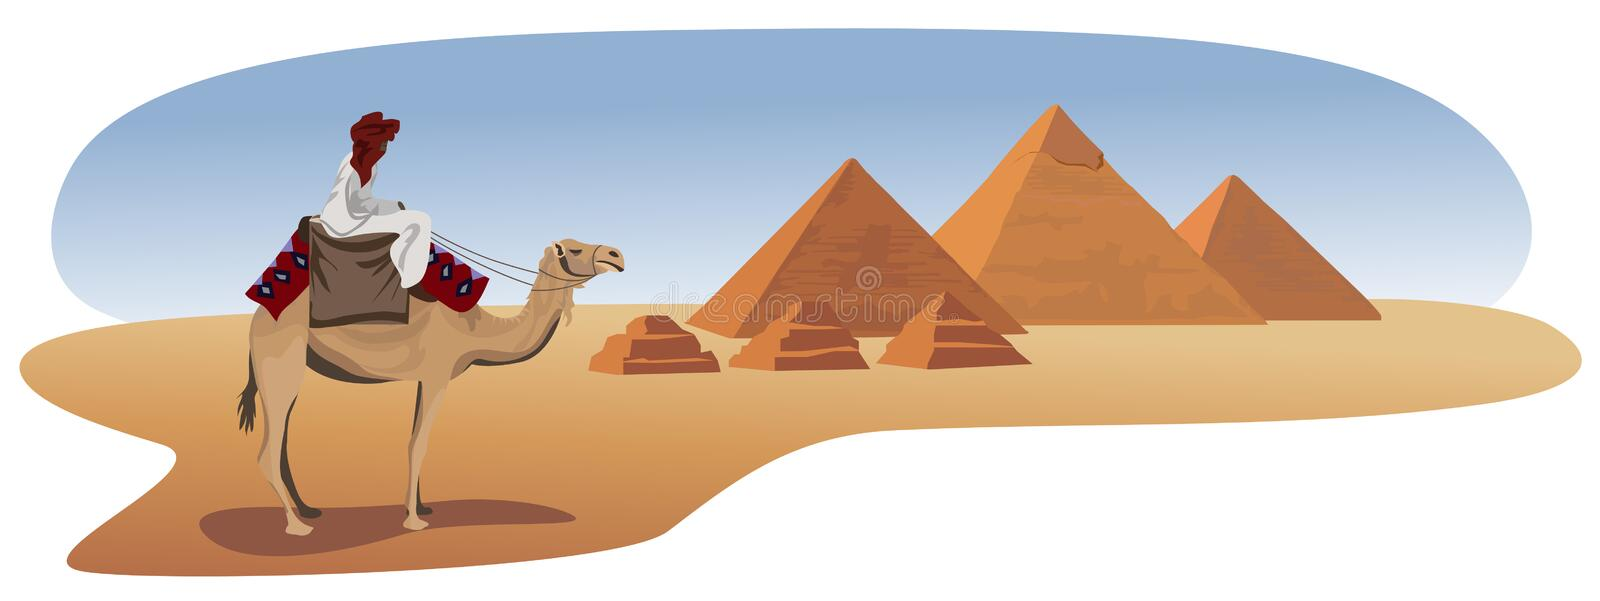 Bedouin and the Pyramids. Illustration with a bedouin and the pyramids of Giza vector illustration